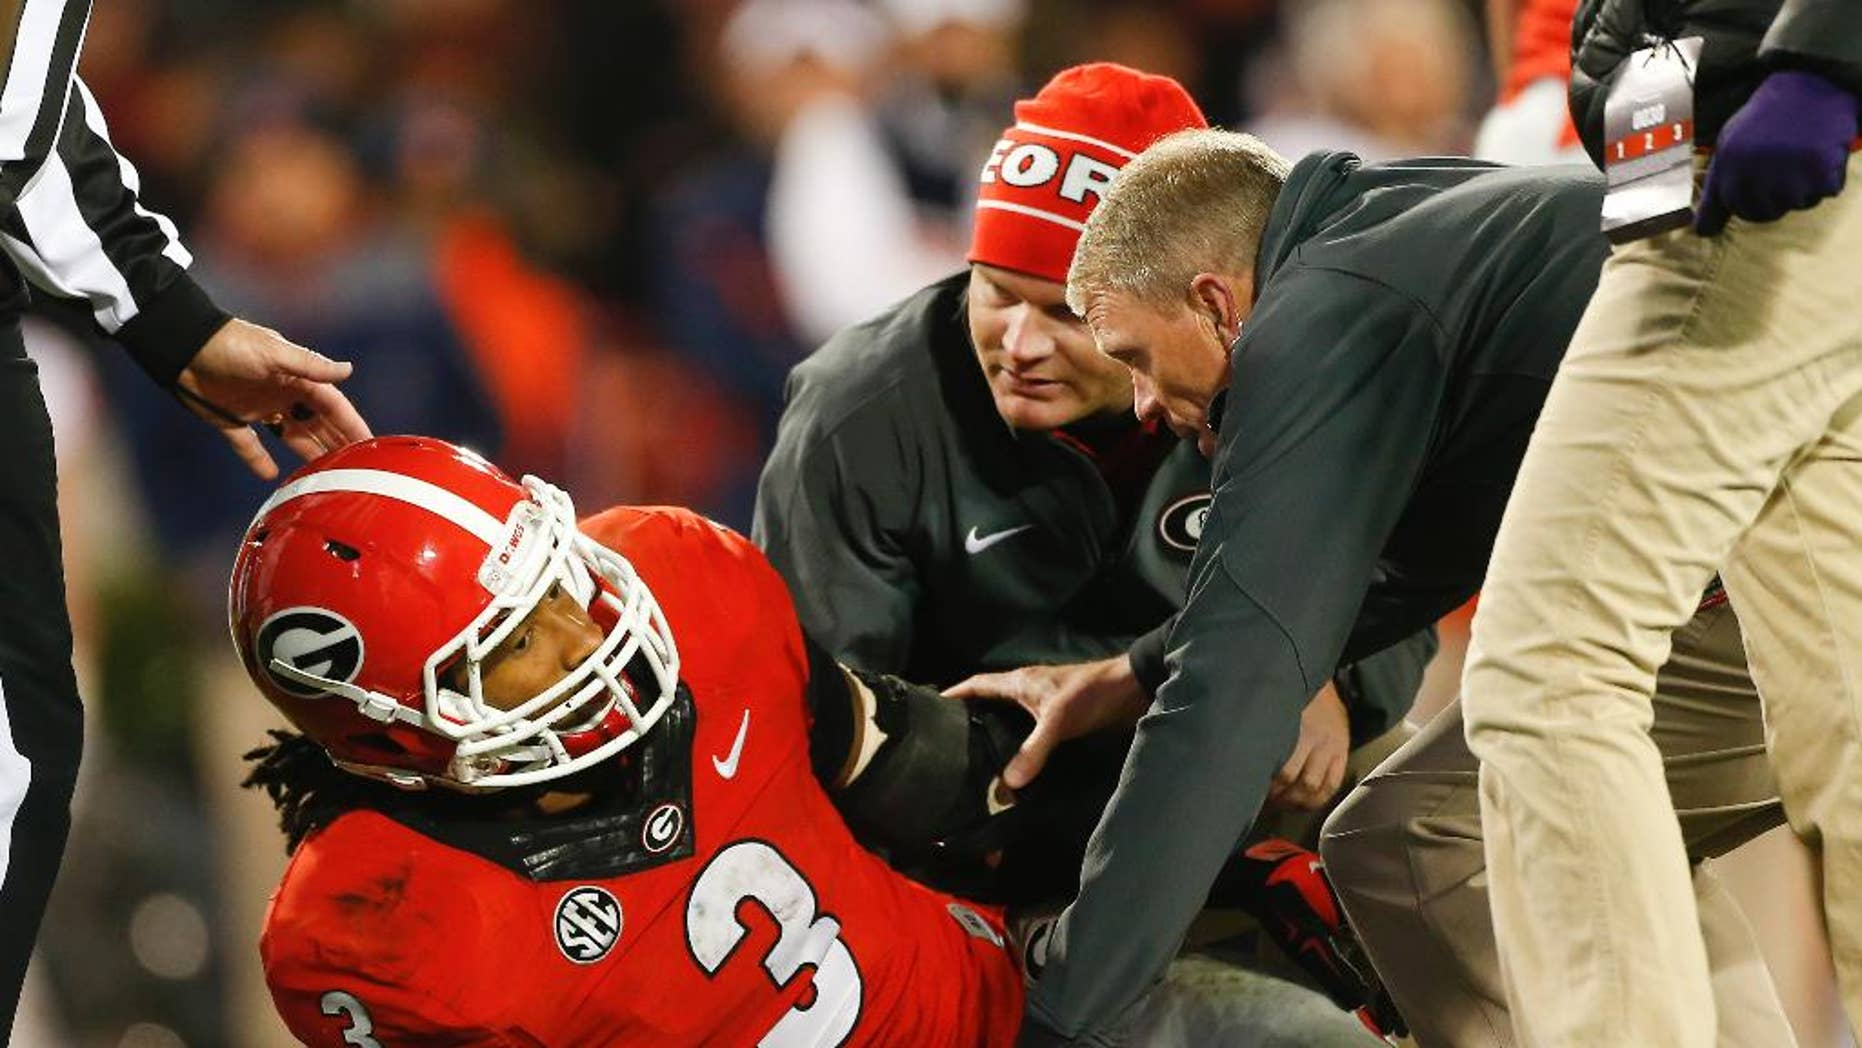 Members of the Georgia medical staff tend to injured running back Todd Gurley in the second half of an NCAA college football game  against Auburn Saturday, Nov. 15, 2014, in Athens, Ga. Georgia won 34-7. (AP Photo/John Bazemore)